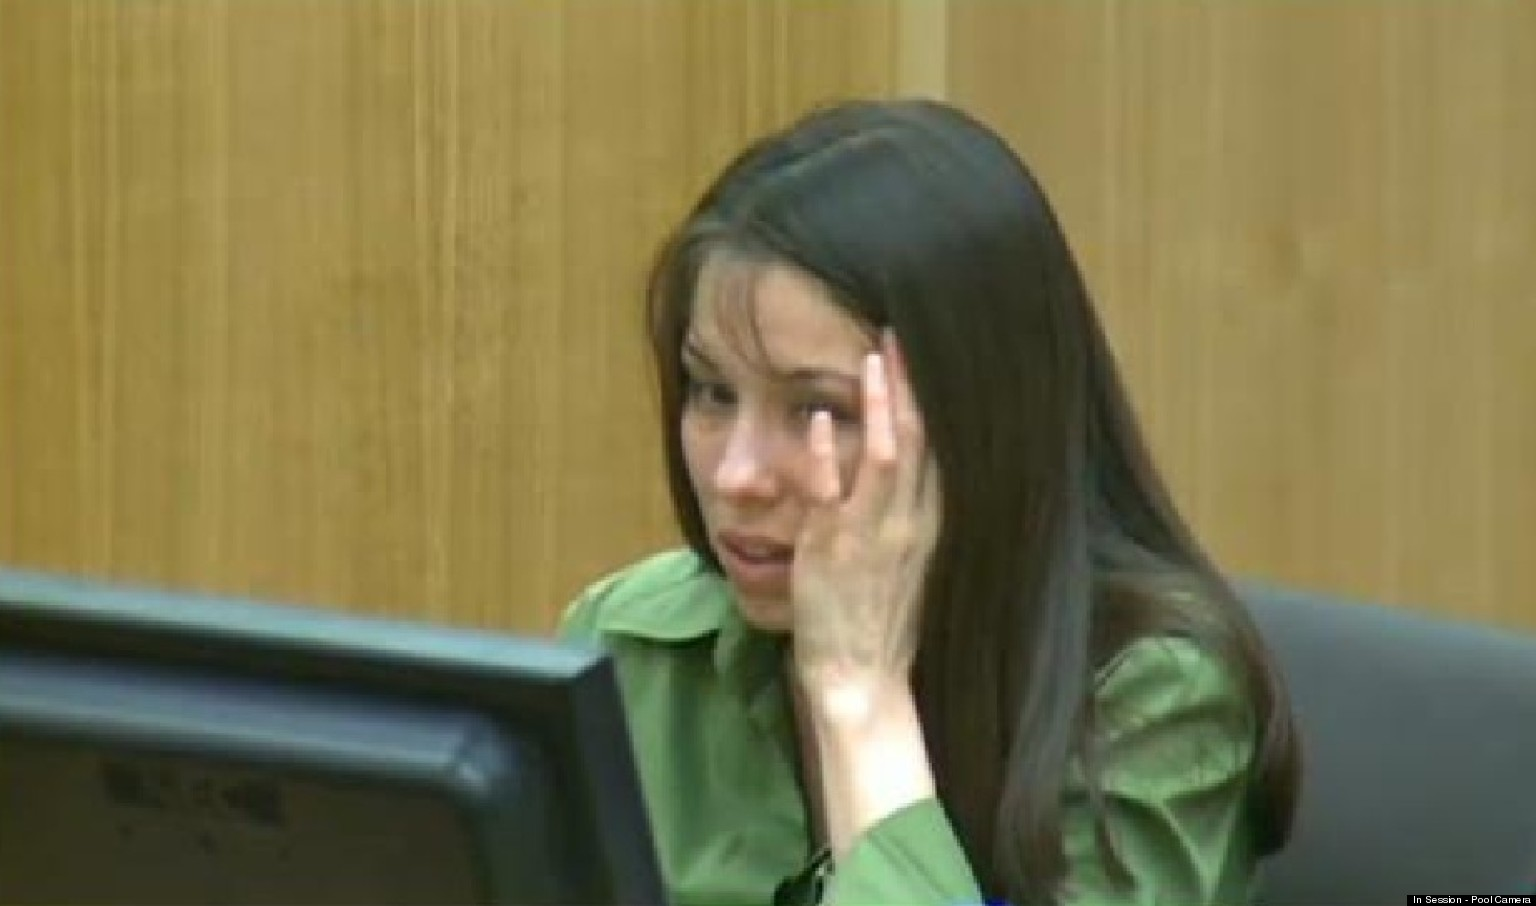 ... prosecutors in the trial of jodi arias have entered dozens of graphic